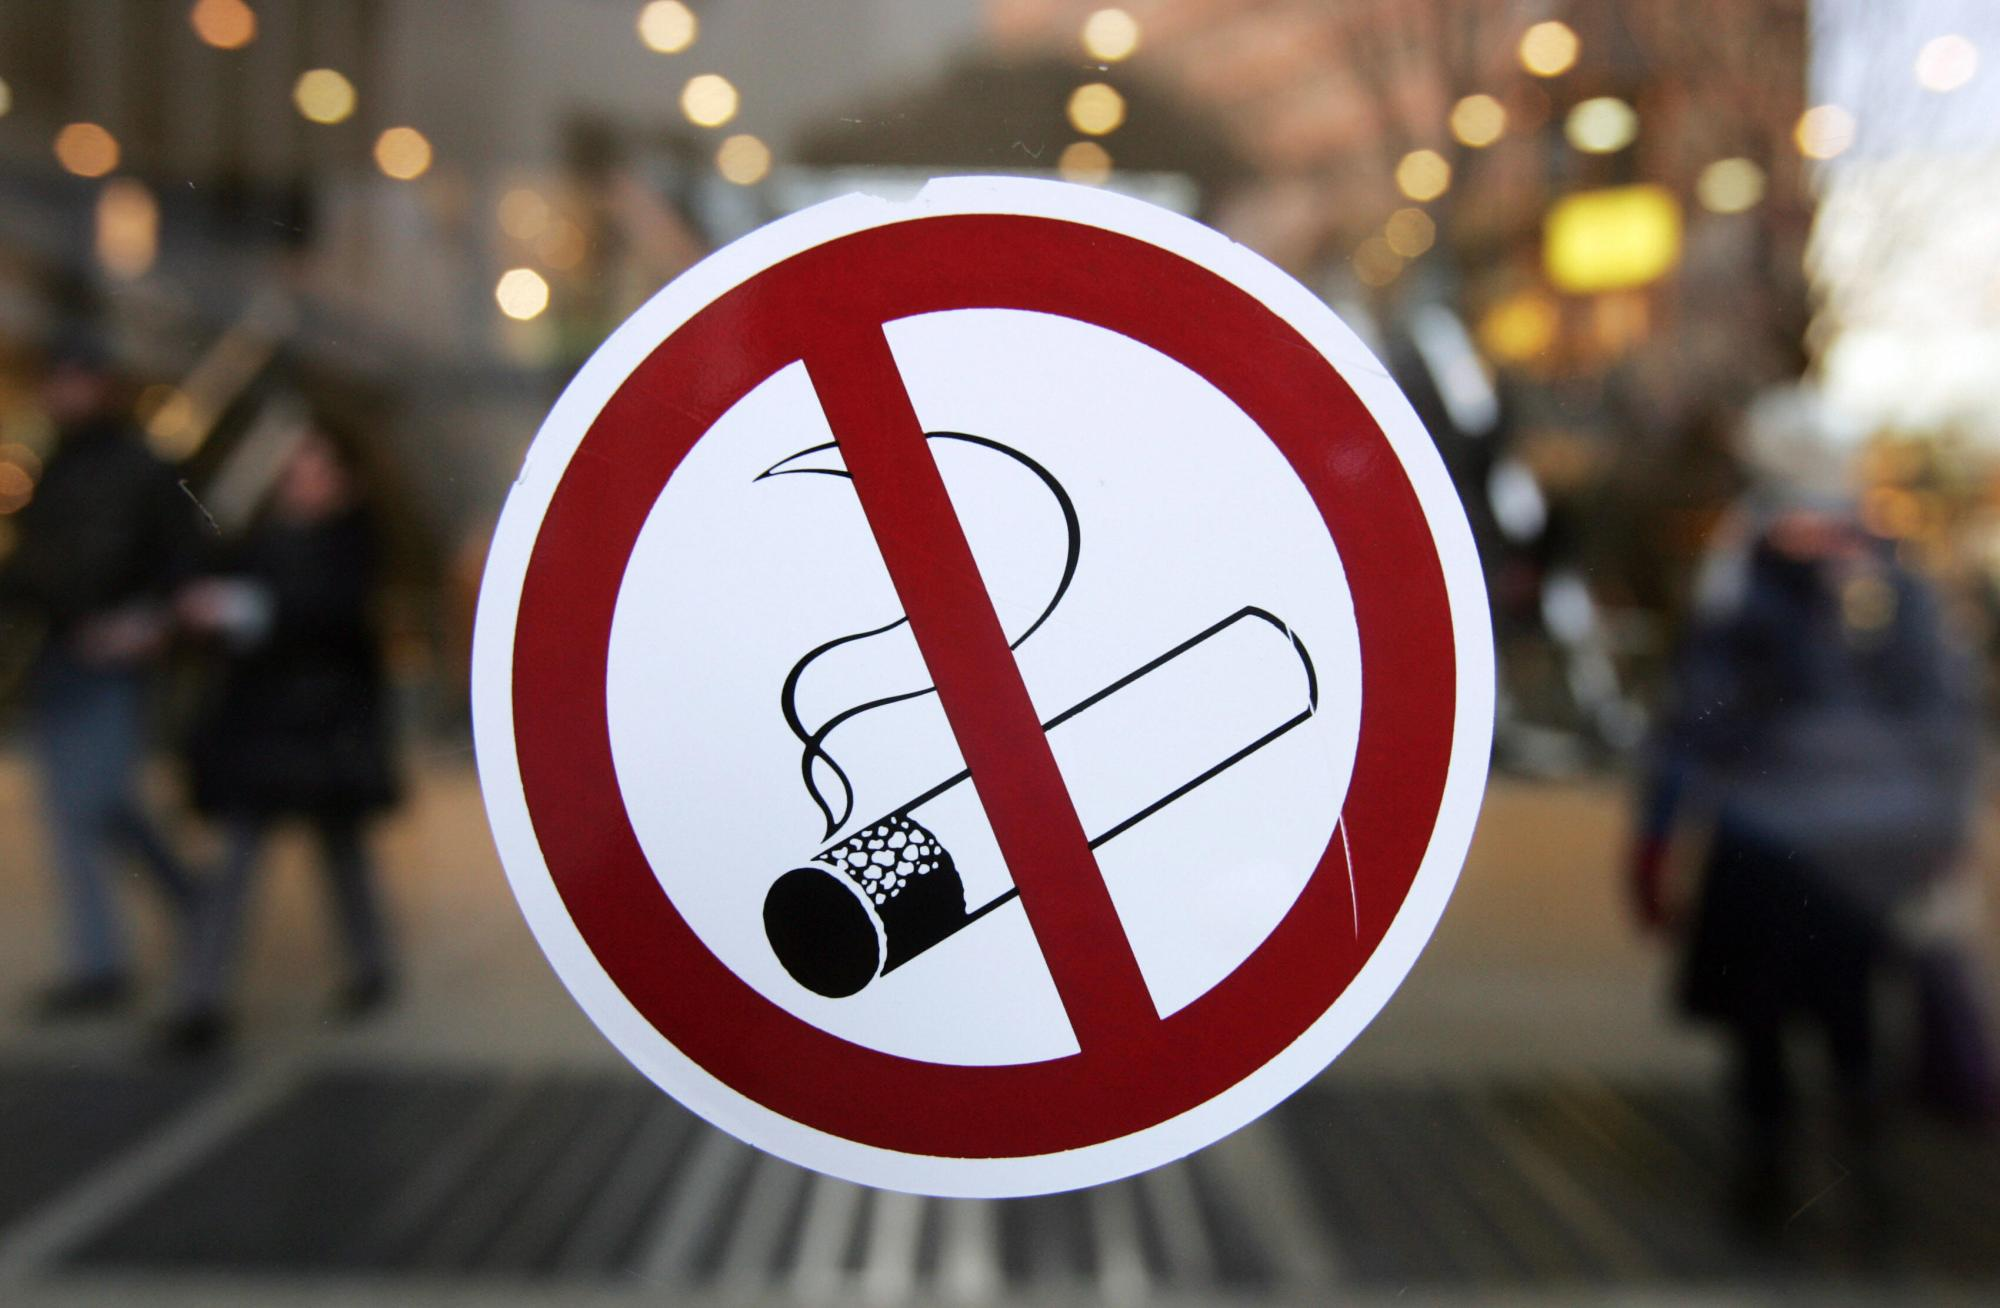 No smoking sign. (Photo: JOHN MACDOUGALL/AFP/Getty Images)